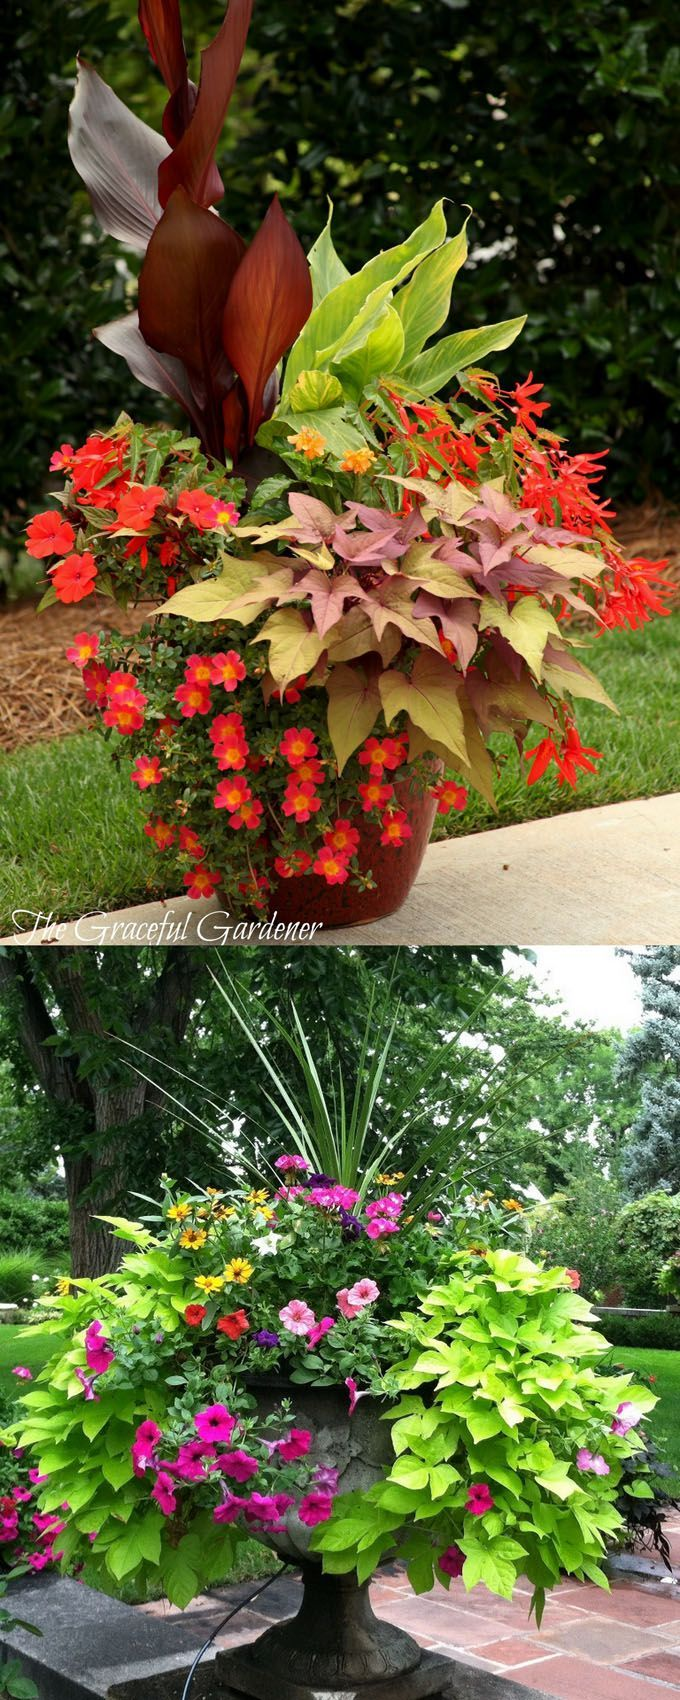 Best 25+ Planters ideas only on Pinterest | Diy planters, Outdoor ...